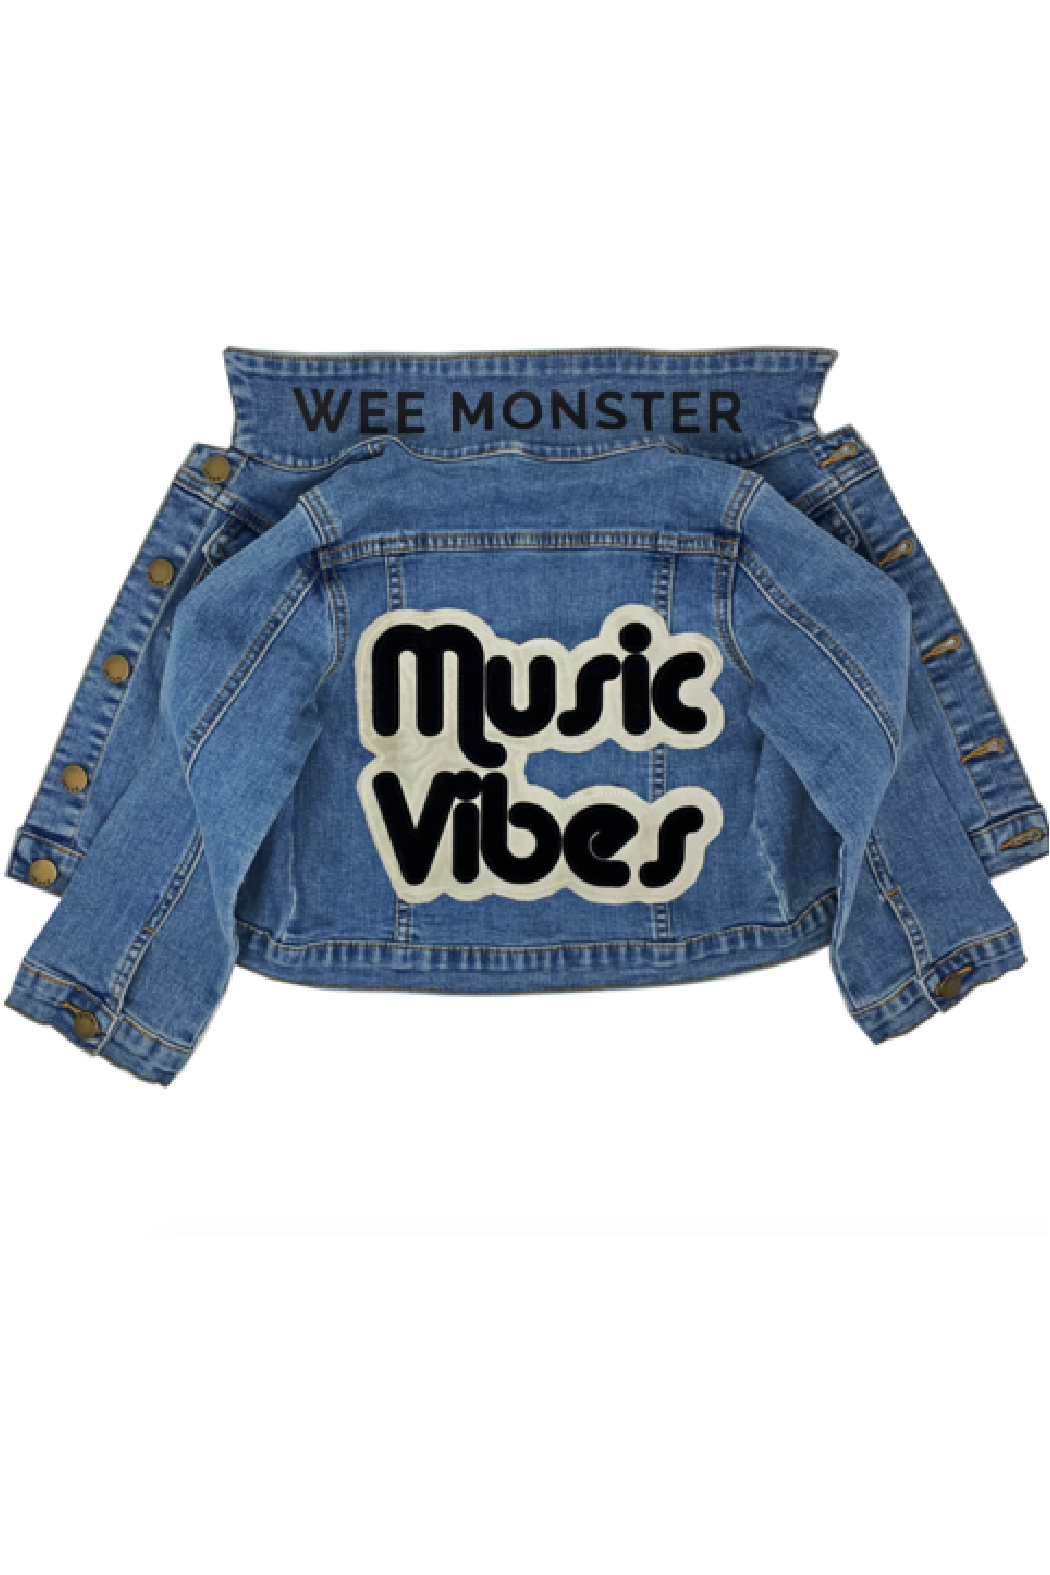 Wee Monster Music VIbes Denim Jacket - Main Image